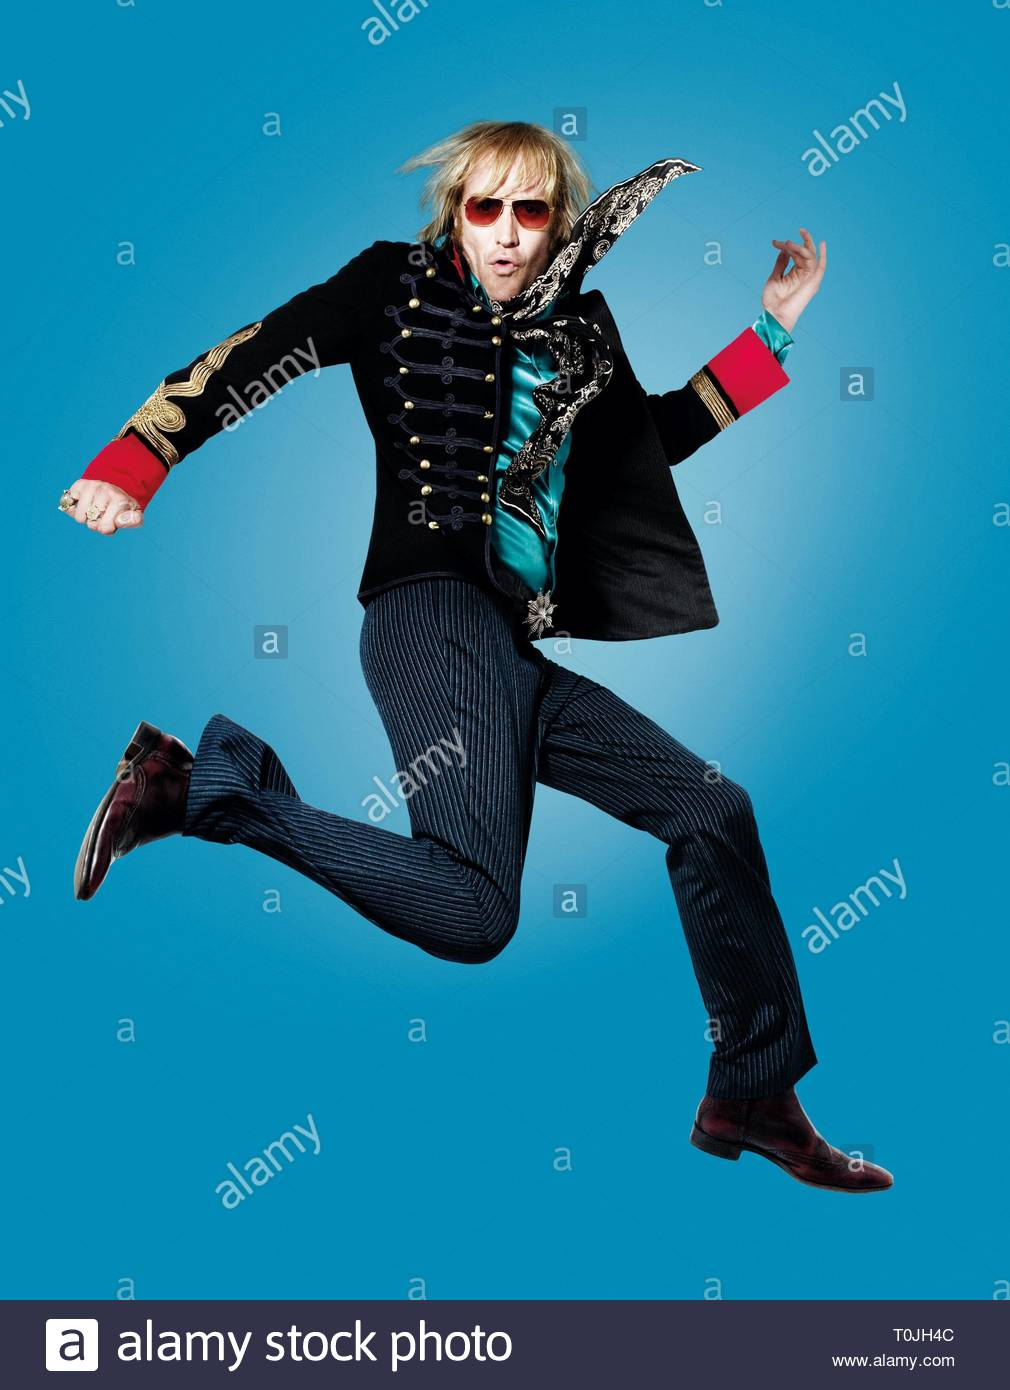 RHYS IFANS, THE BOAT THAT ROCKED, 2009 - Stock Image